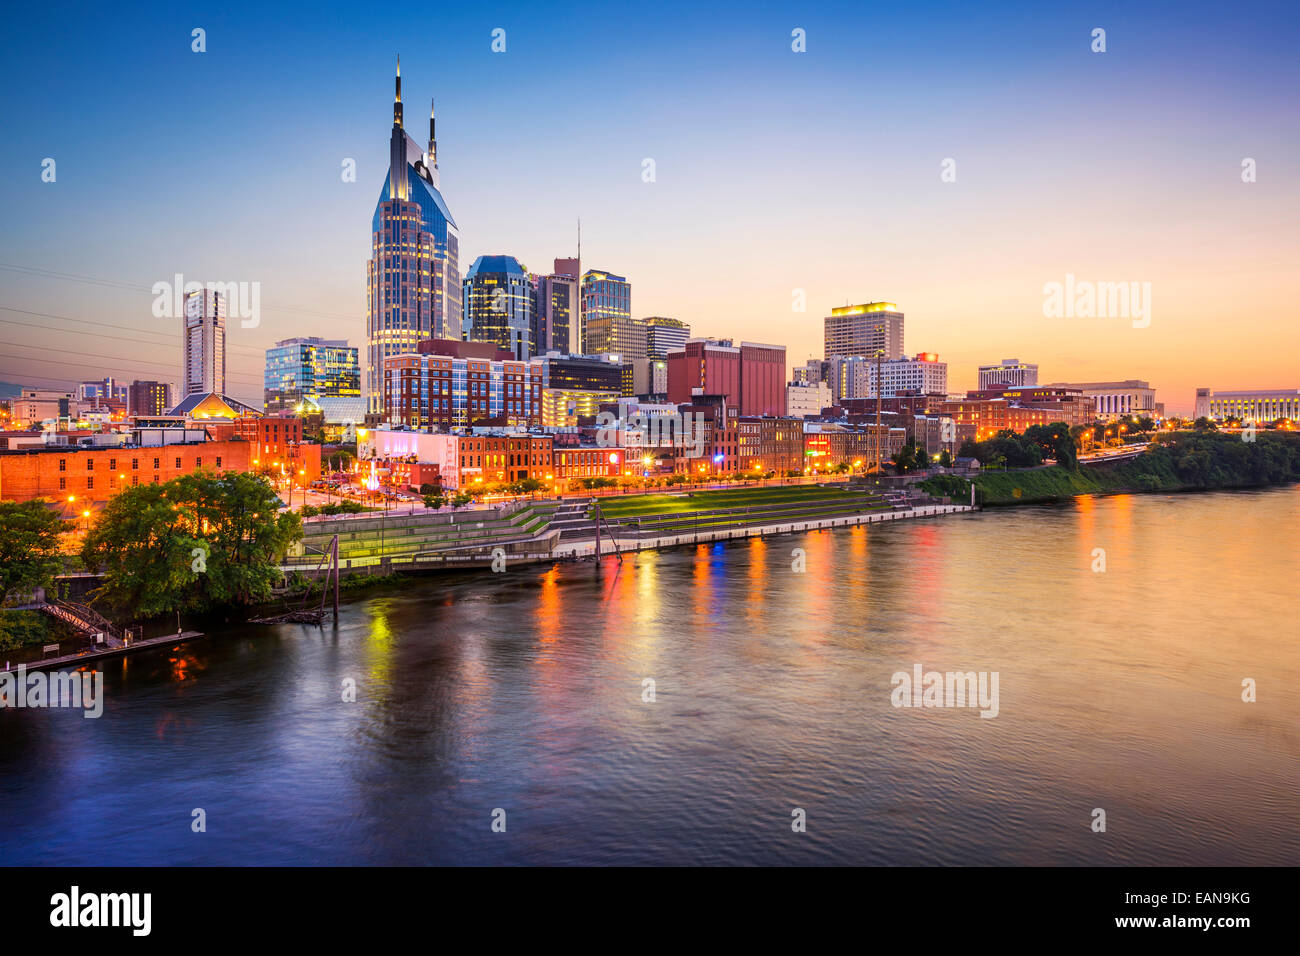 Nashville, Tennessee, USA downtown skyline on the Cumberland River. - Stock Image